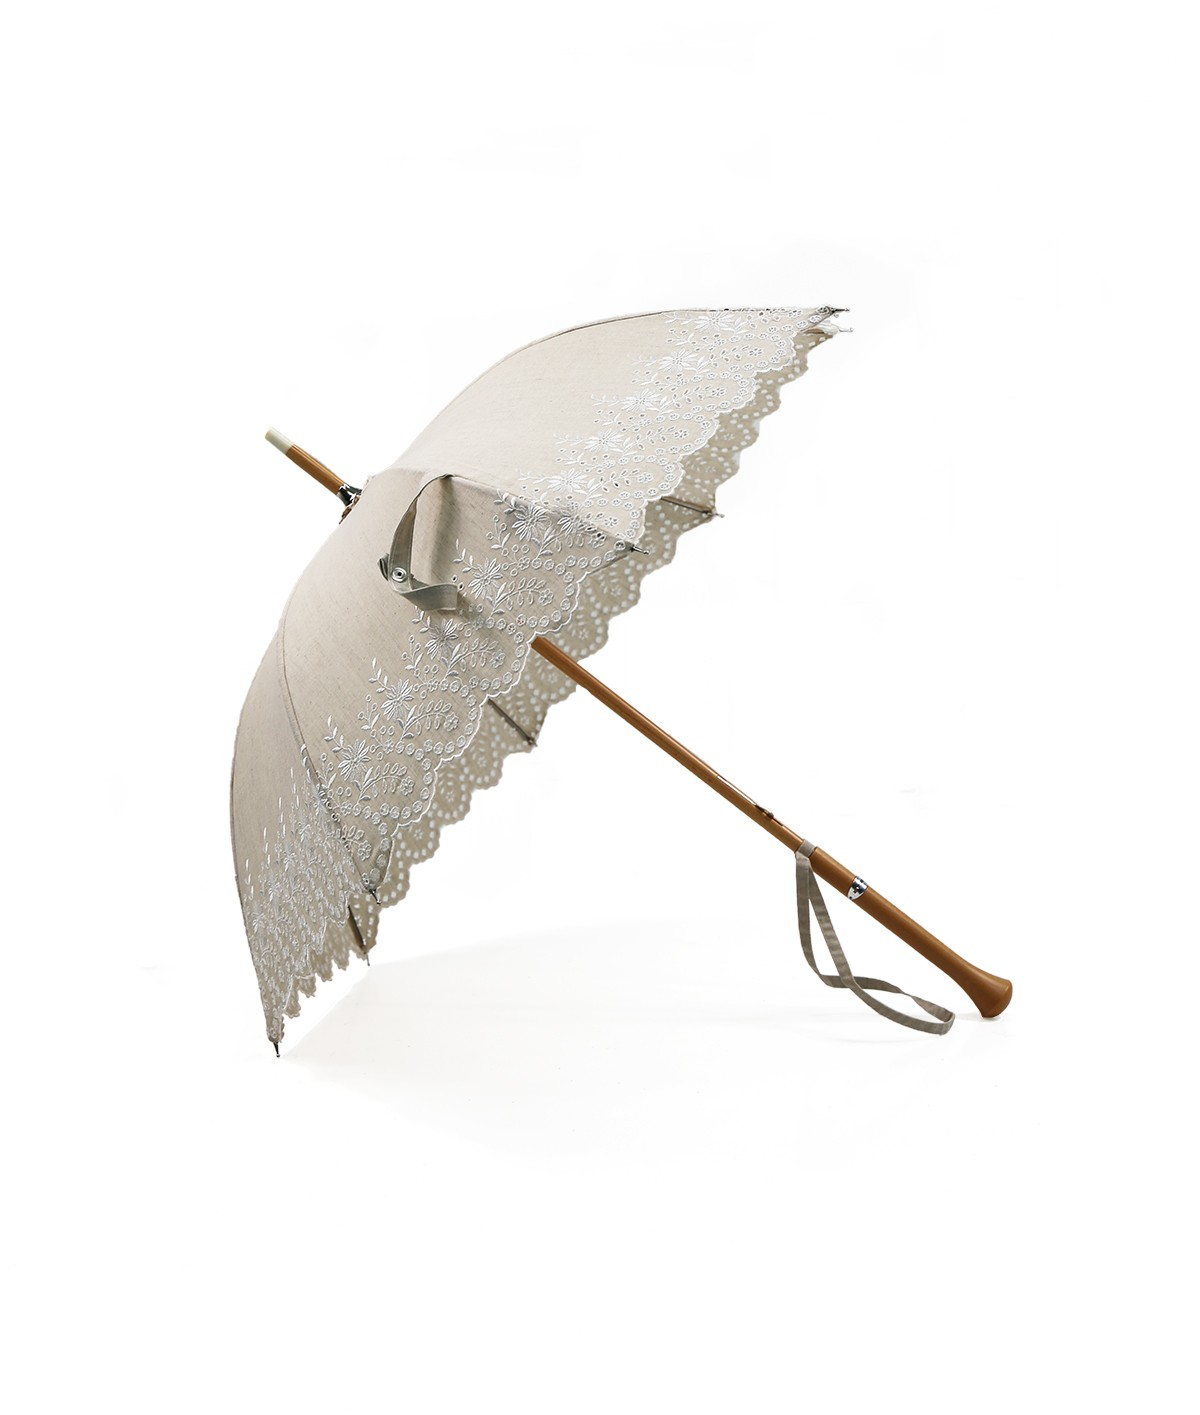 →  Parasol - English embroidery handcrafted in France by the French Umbrellas Manufacturer Maison Pierre Vaux